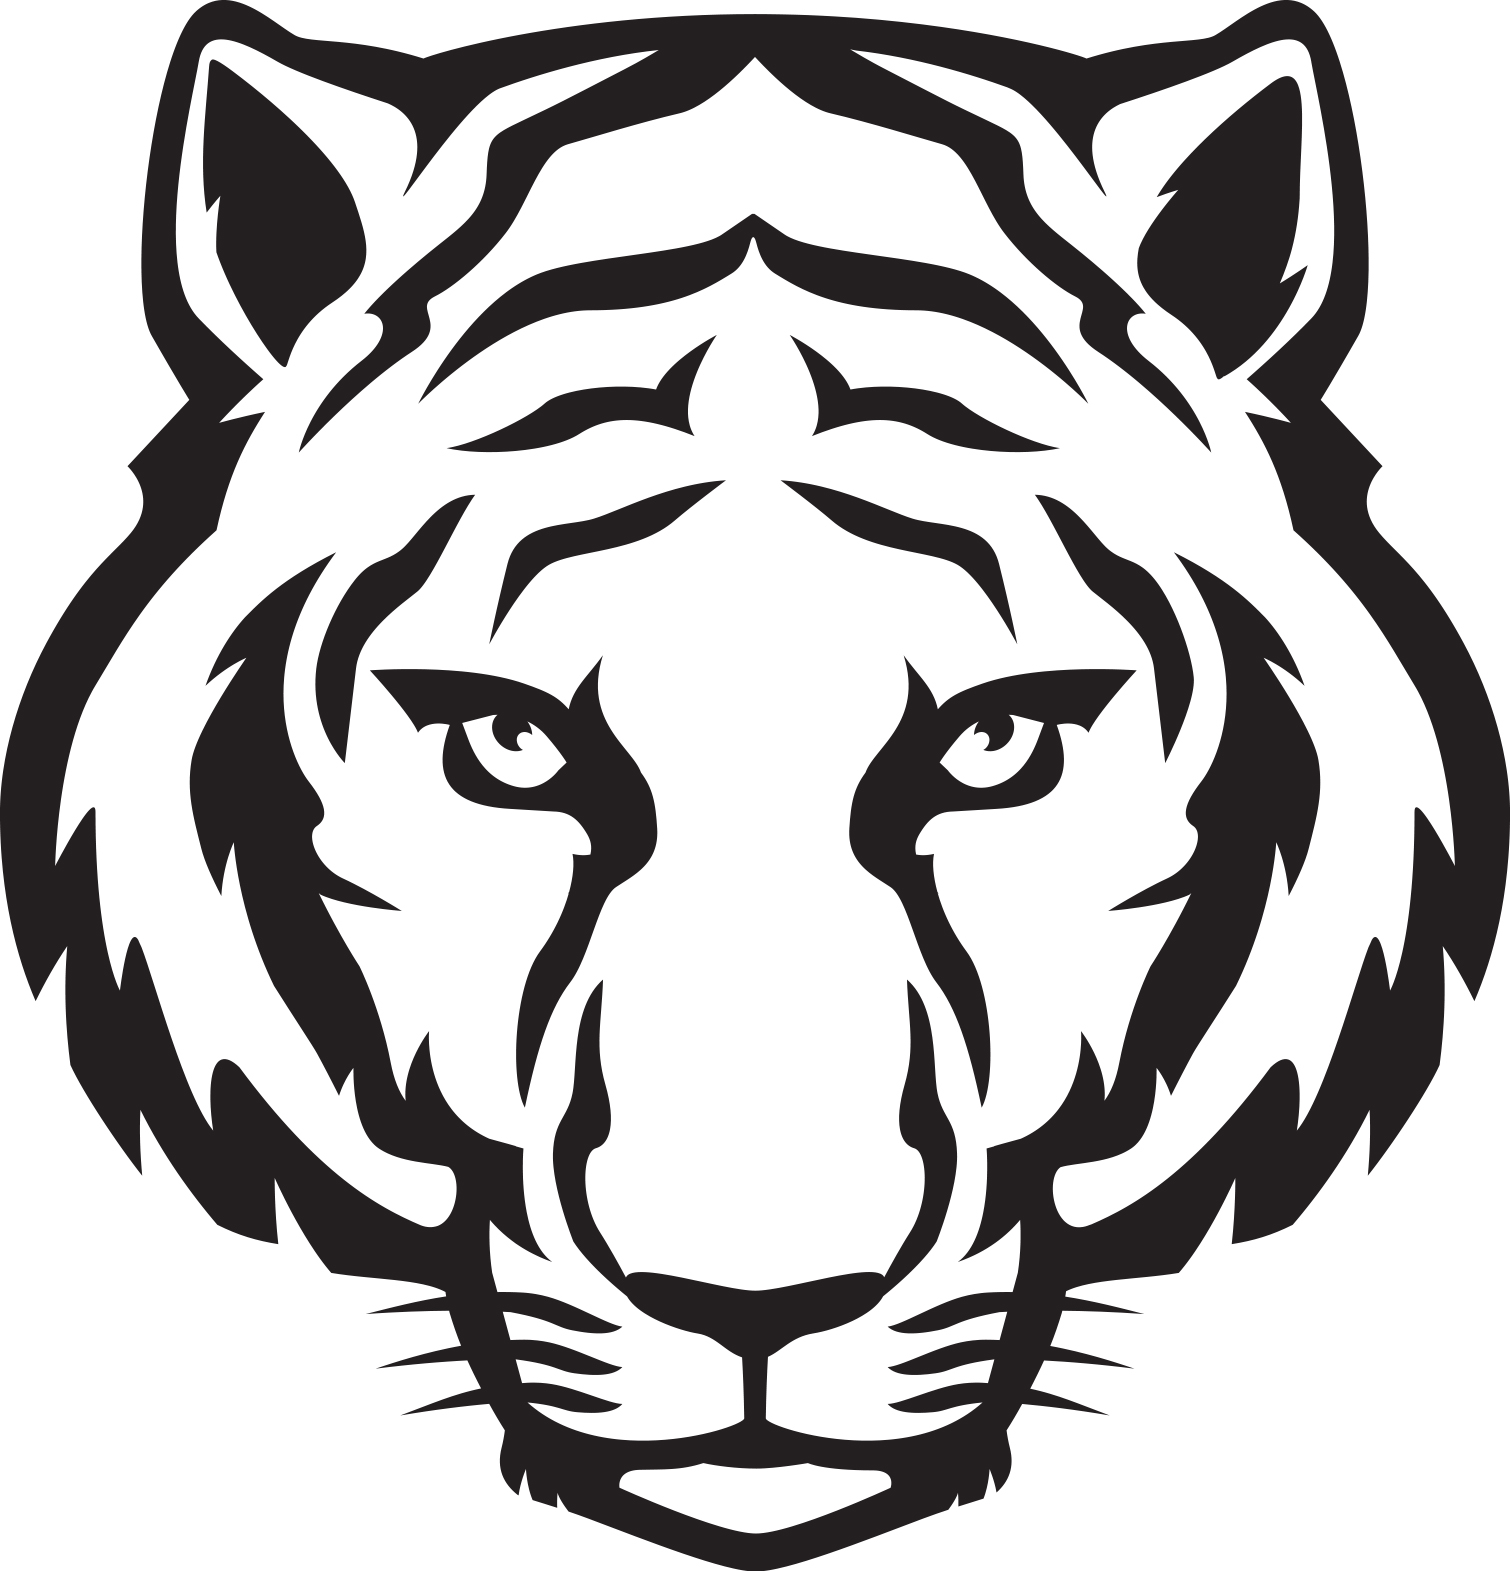 Tiger Clipart Black And White & Tiger Black And White Clip Art.